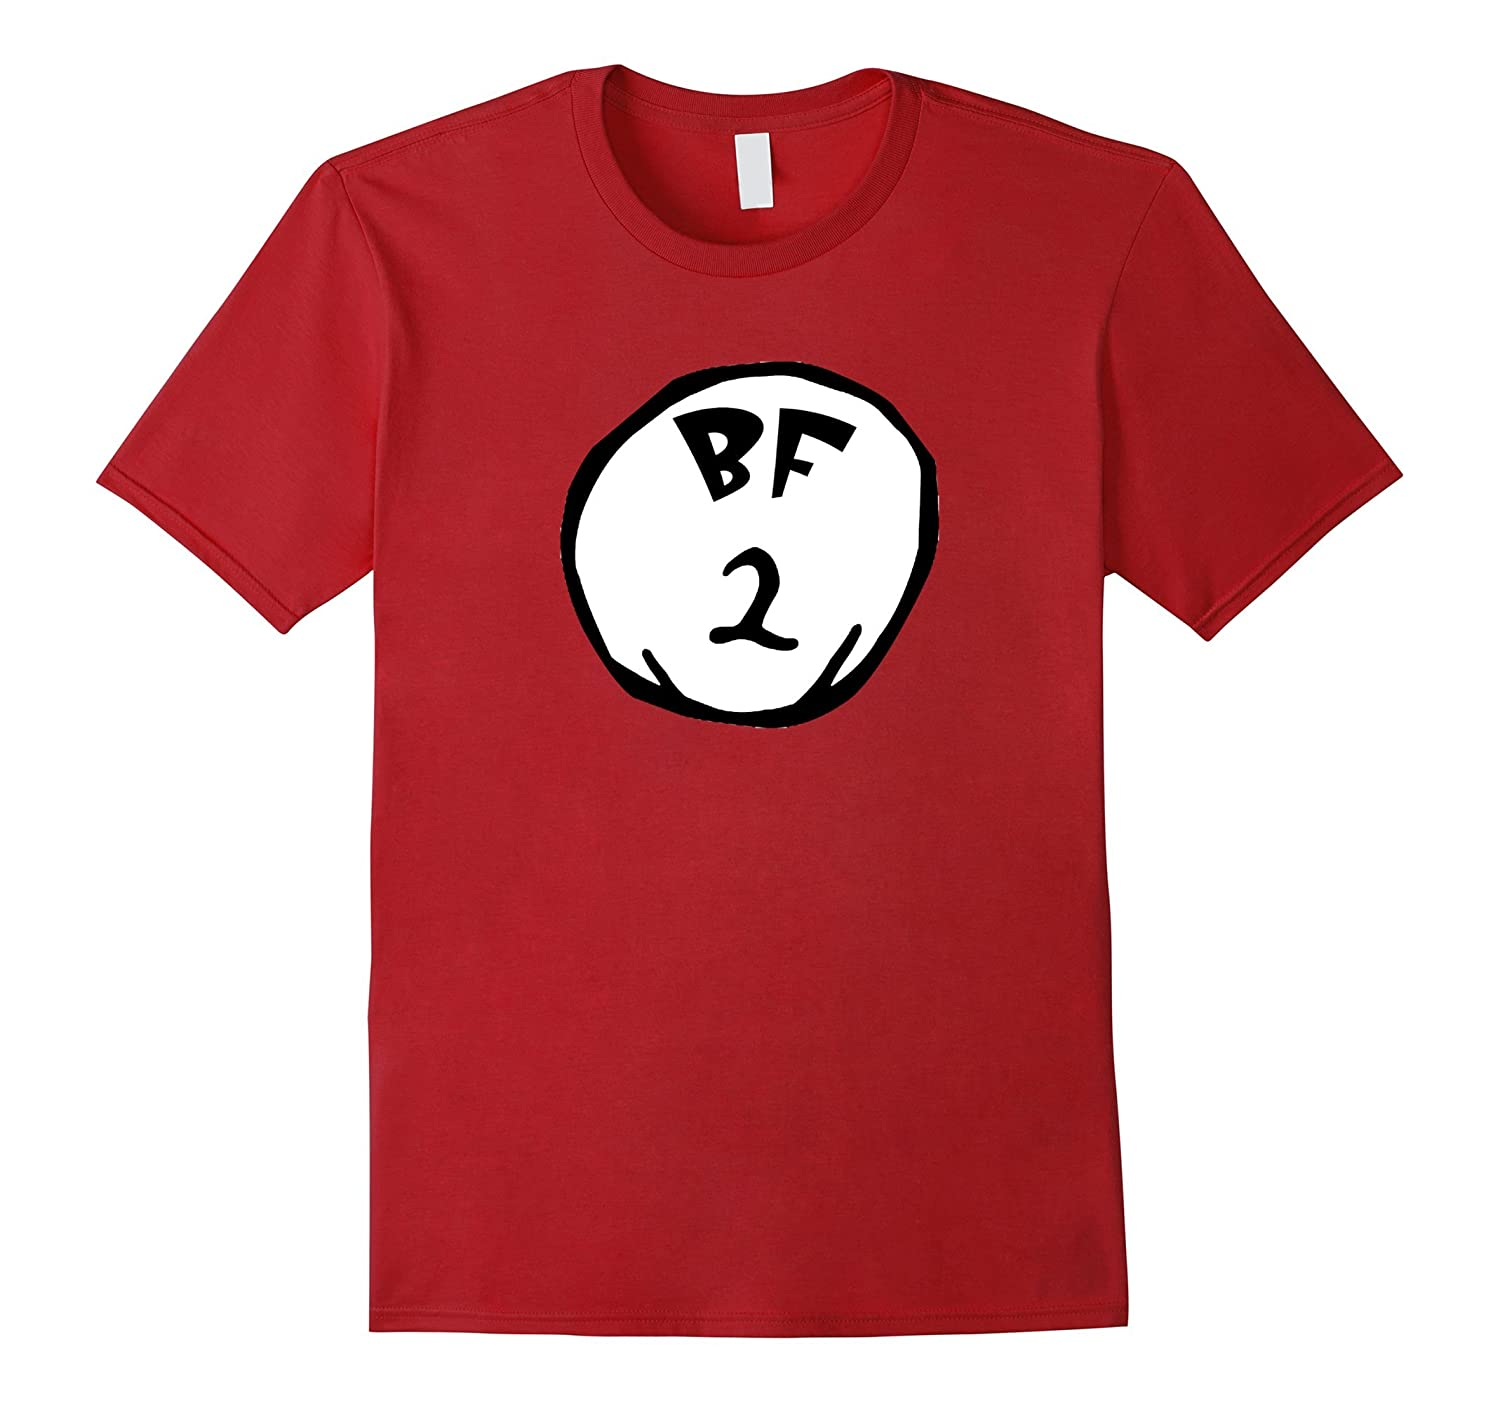 BF 2 Funny T-Shirt-Art